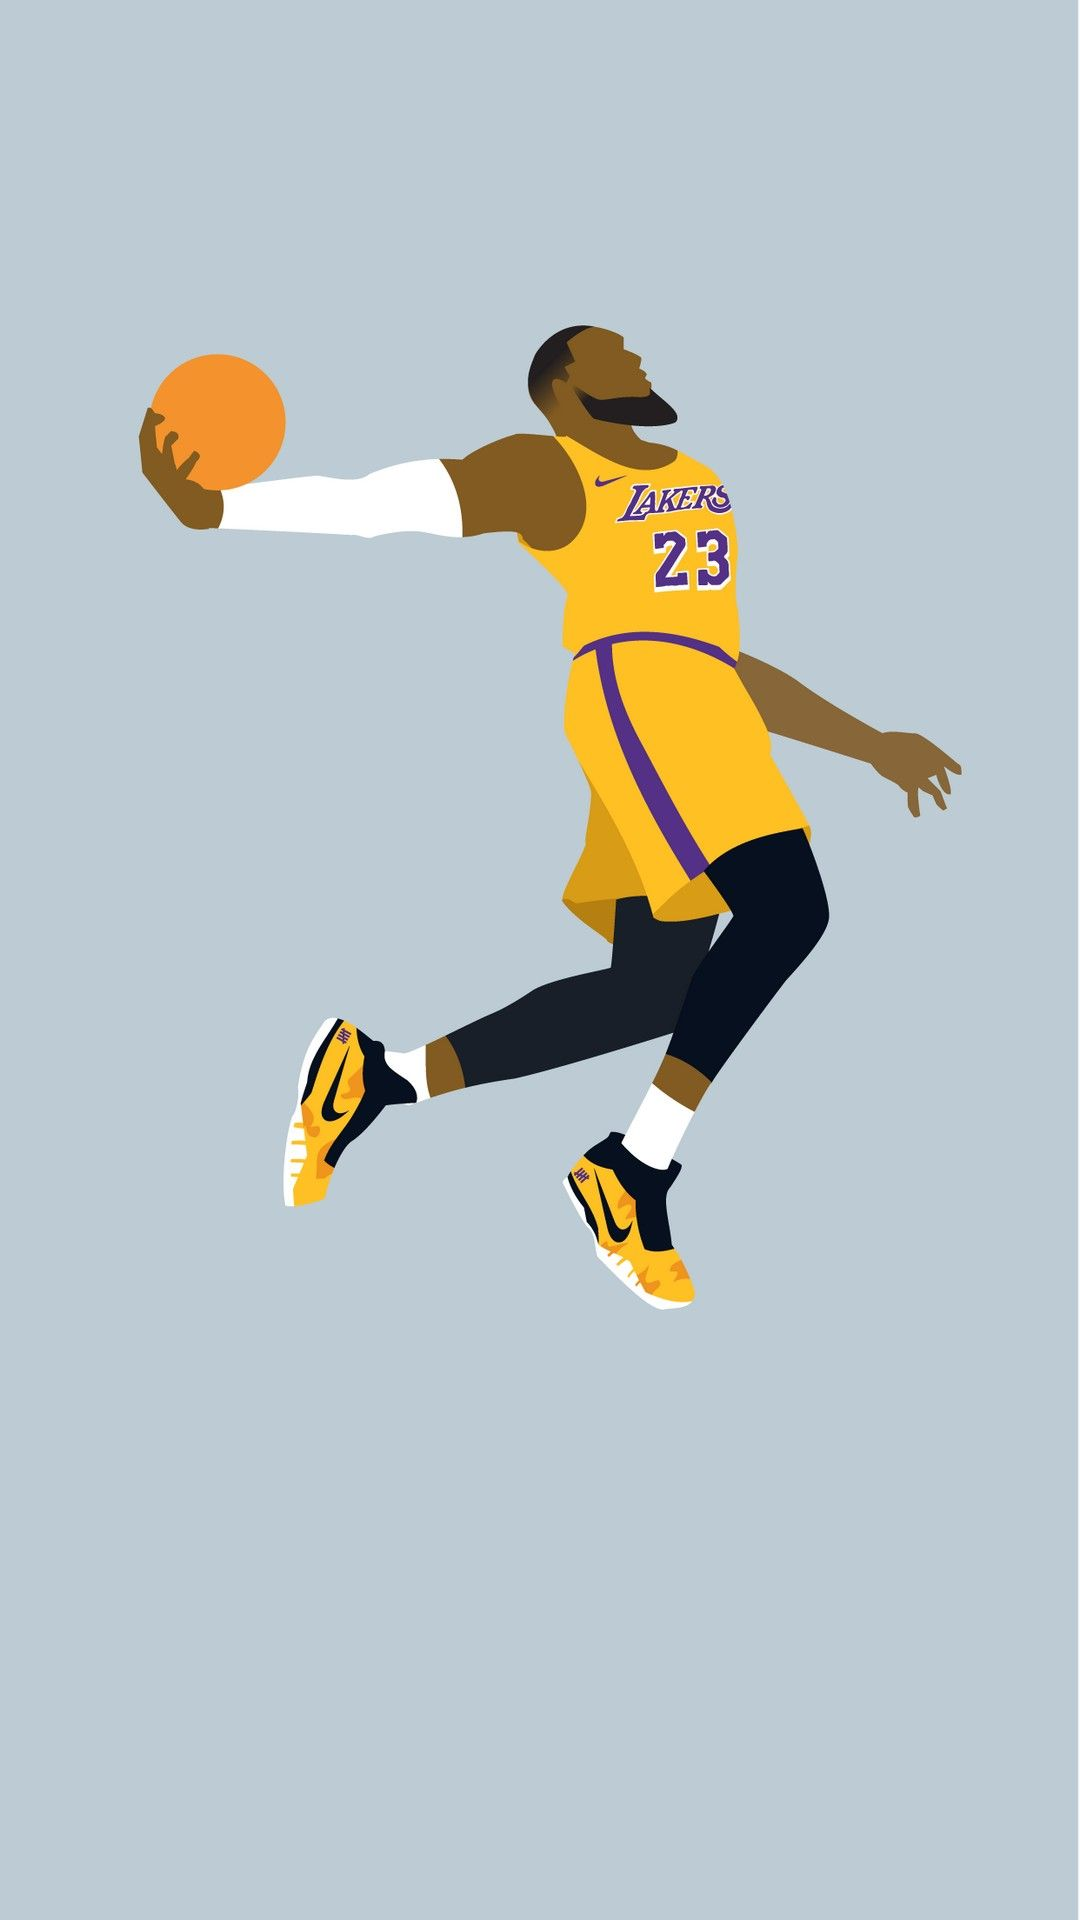 Iphone Wallpaper Hd Lebron James La Lakers 2020 Basketball Wallpaper Lebron James Wallpapers Basketball Wallpapers Hd Lebron James Lakers